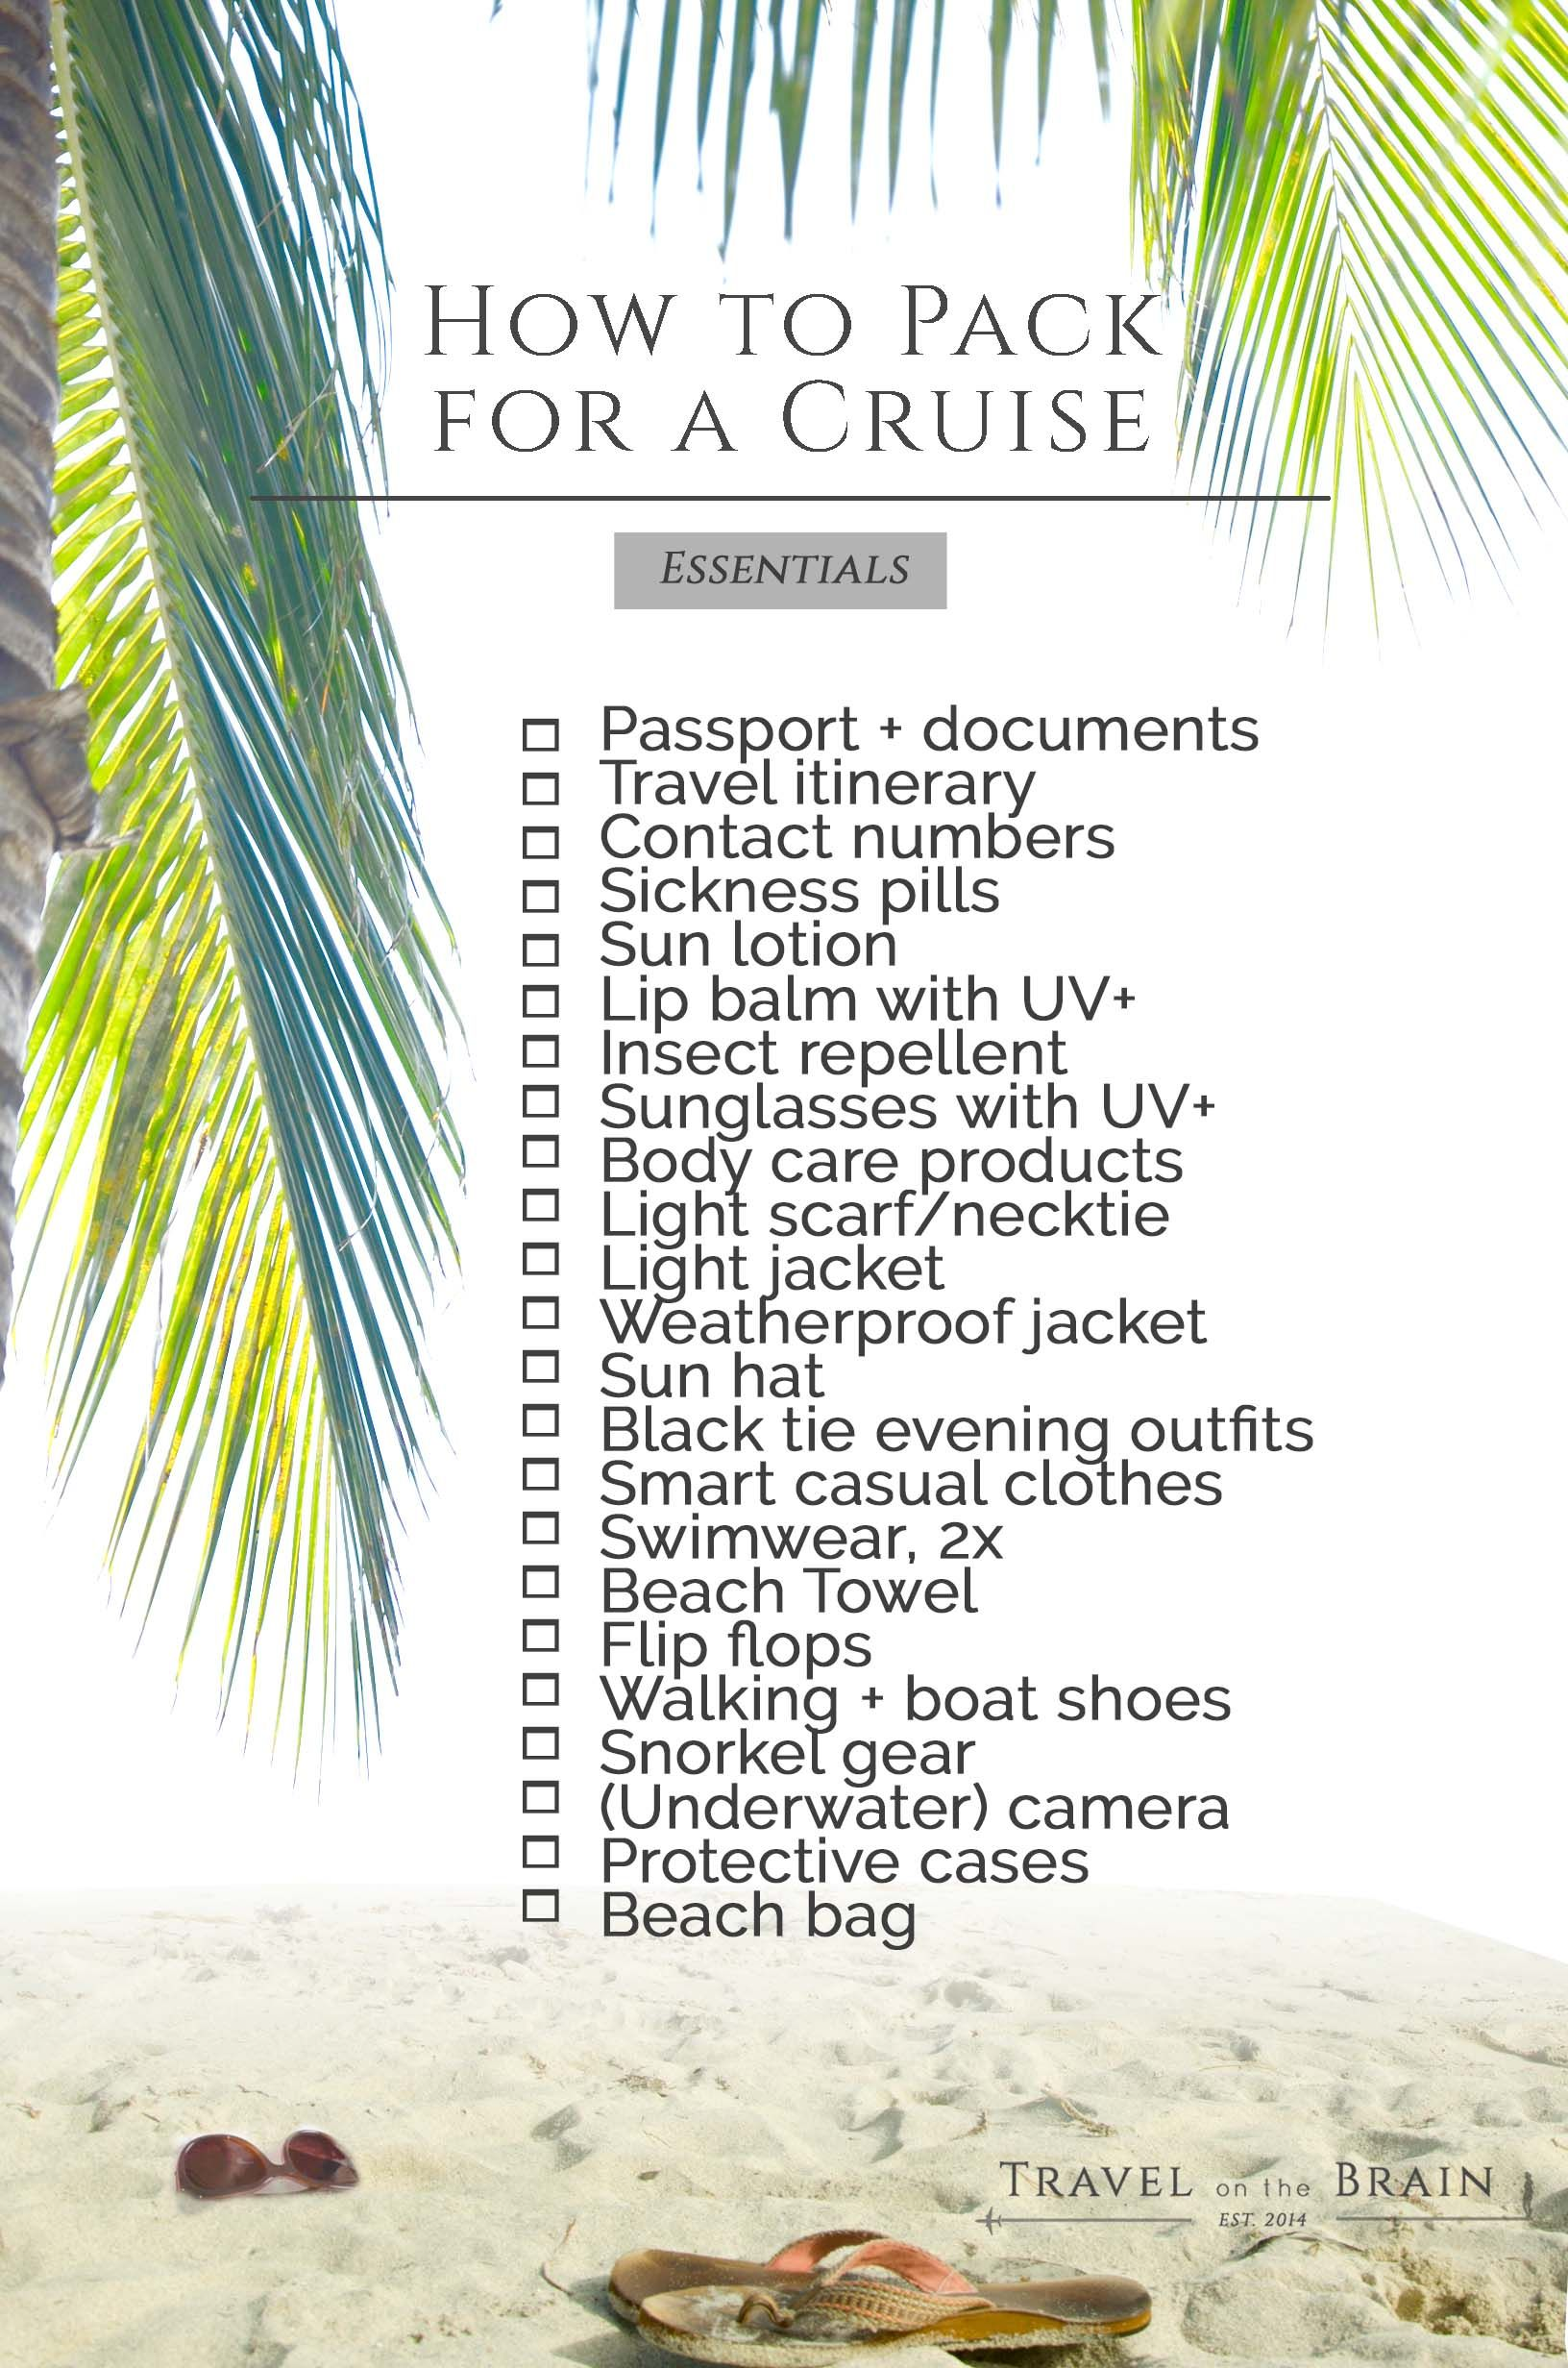 The Ultimate Honeymoon Packing List | Cruises, Cruise vacation and ...